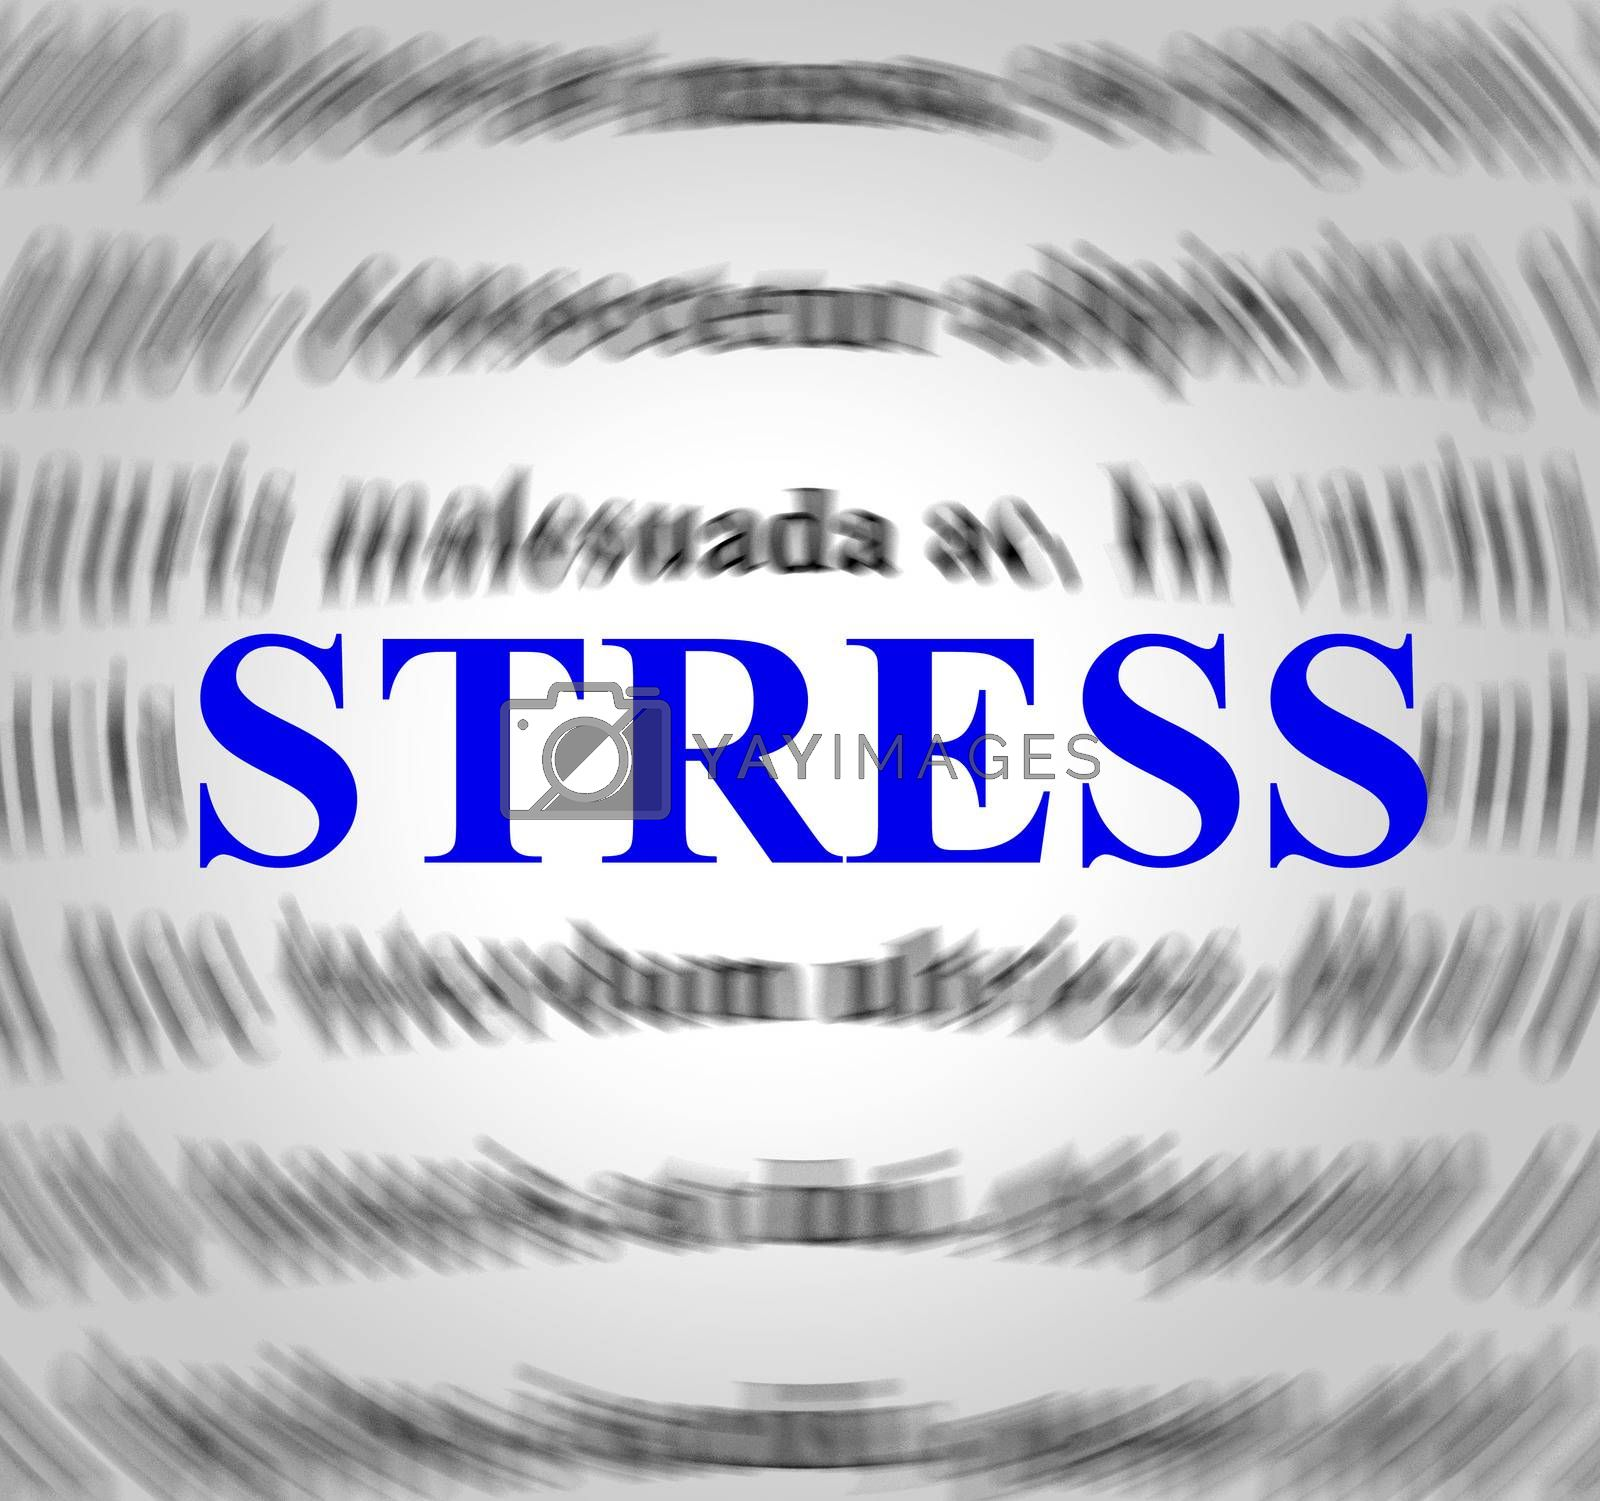 Stress Definition Indicates Explanation Pressures And Tension by stuartmiles